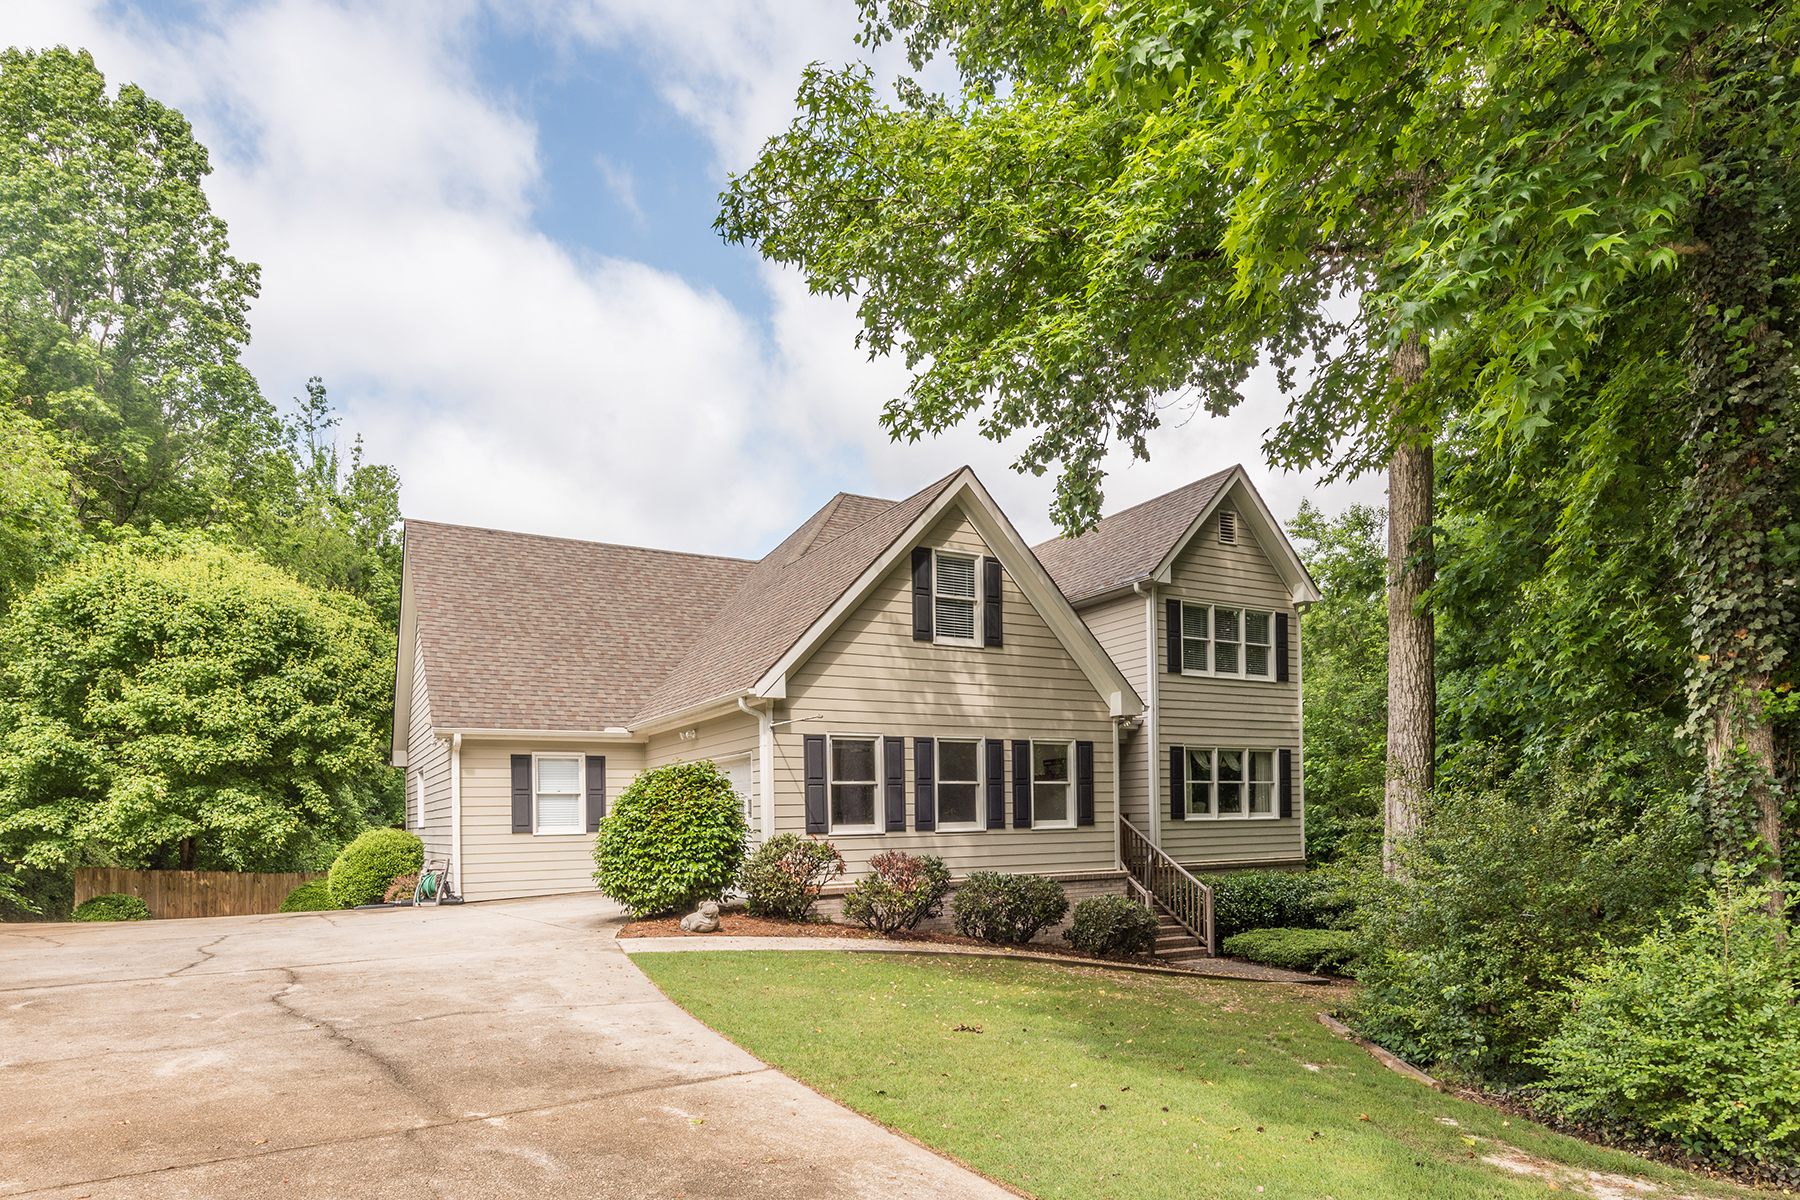 Single Family Home for Sale at Beautiful Custom Built Home in Coveted Stewart Manor 3605 Briscoe Dr Monroe, Georgia 30655 United States